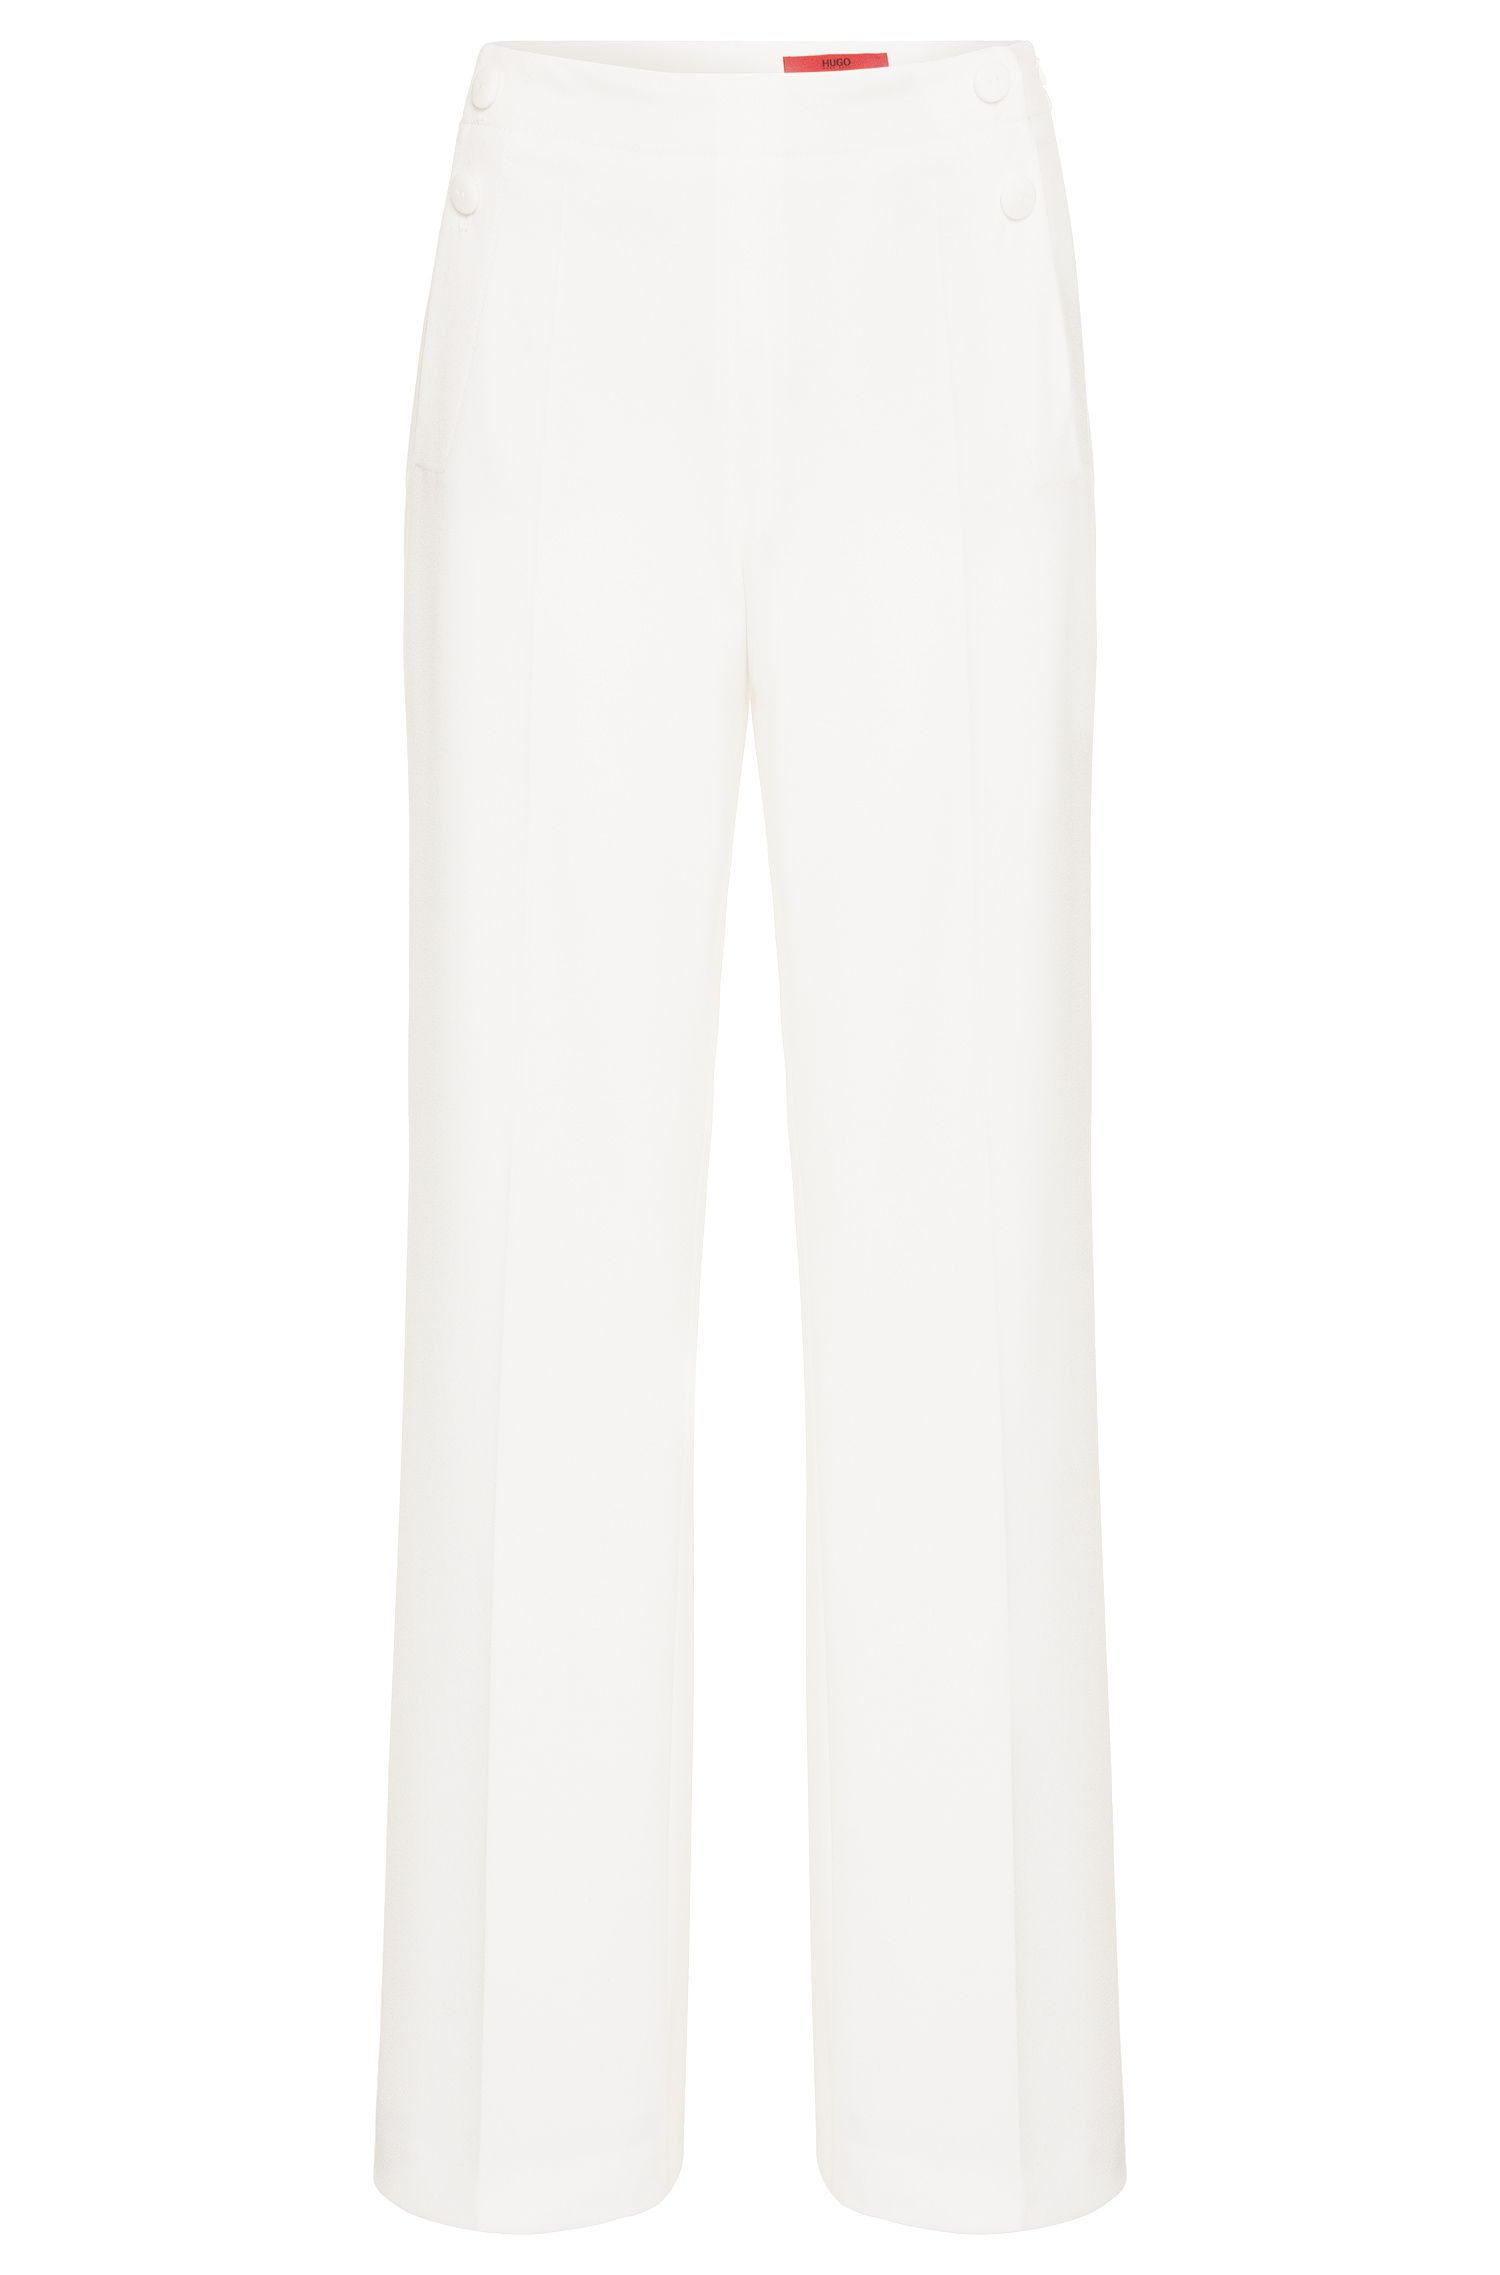 'Hotaru' | Stretch Crepe Wide Leg Trousers